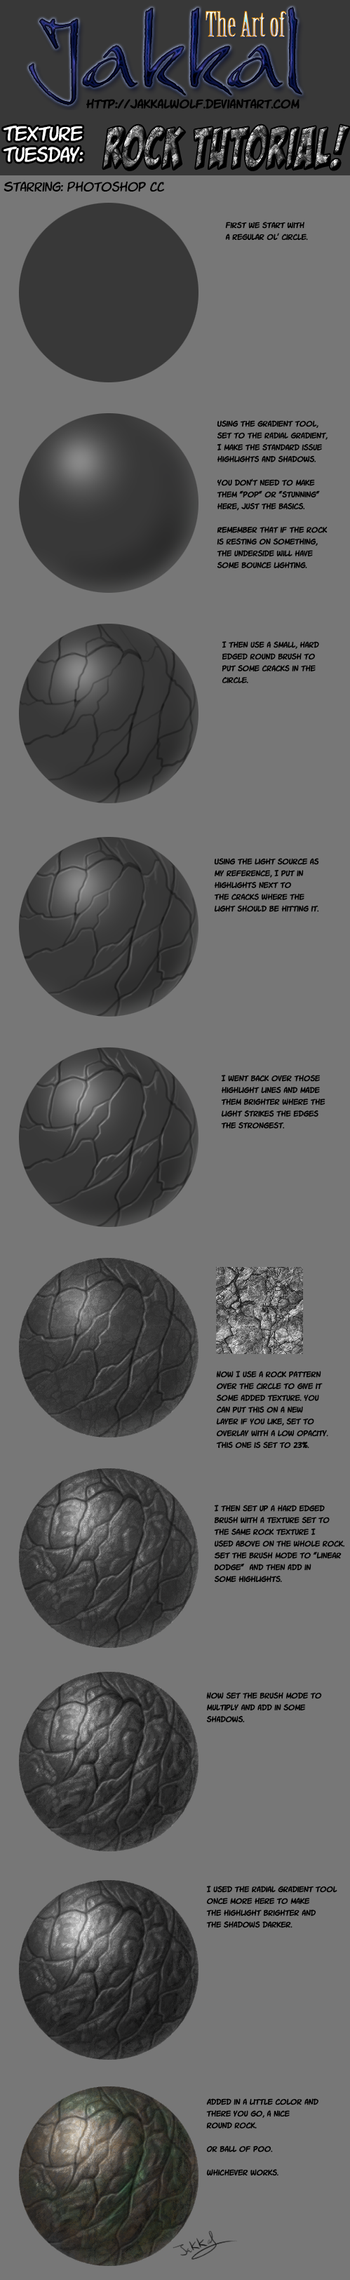 Texture Tuesday: Rock Tutorial by JakkalWolf